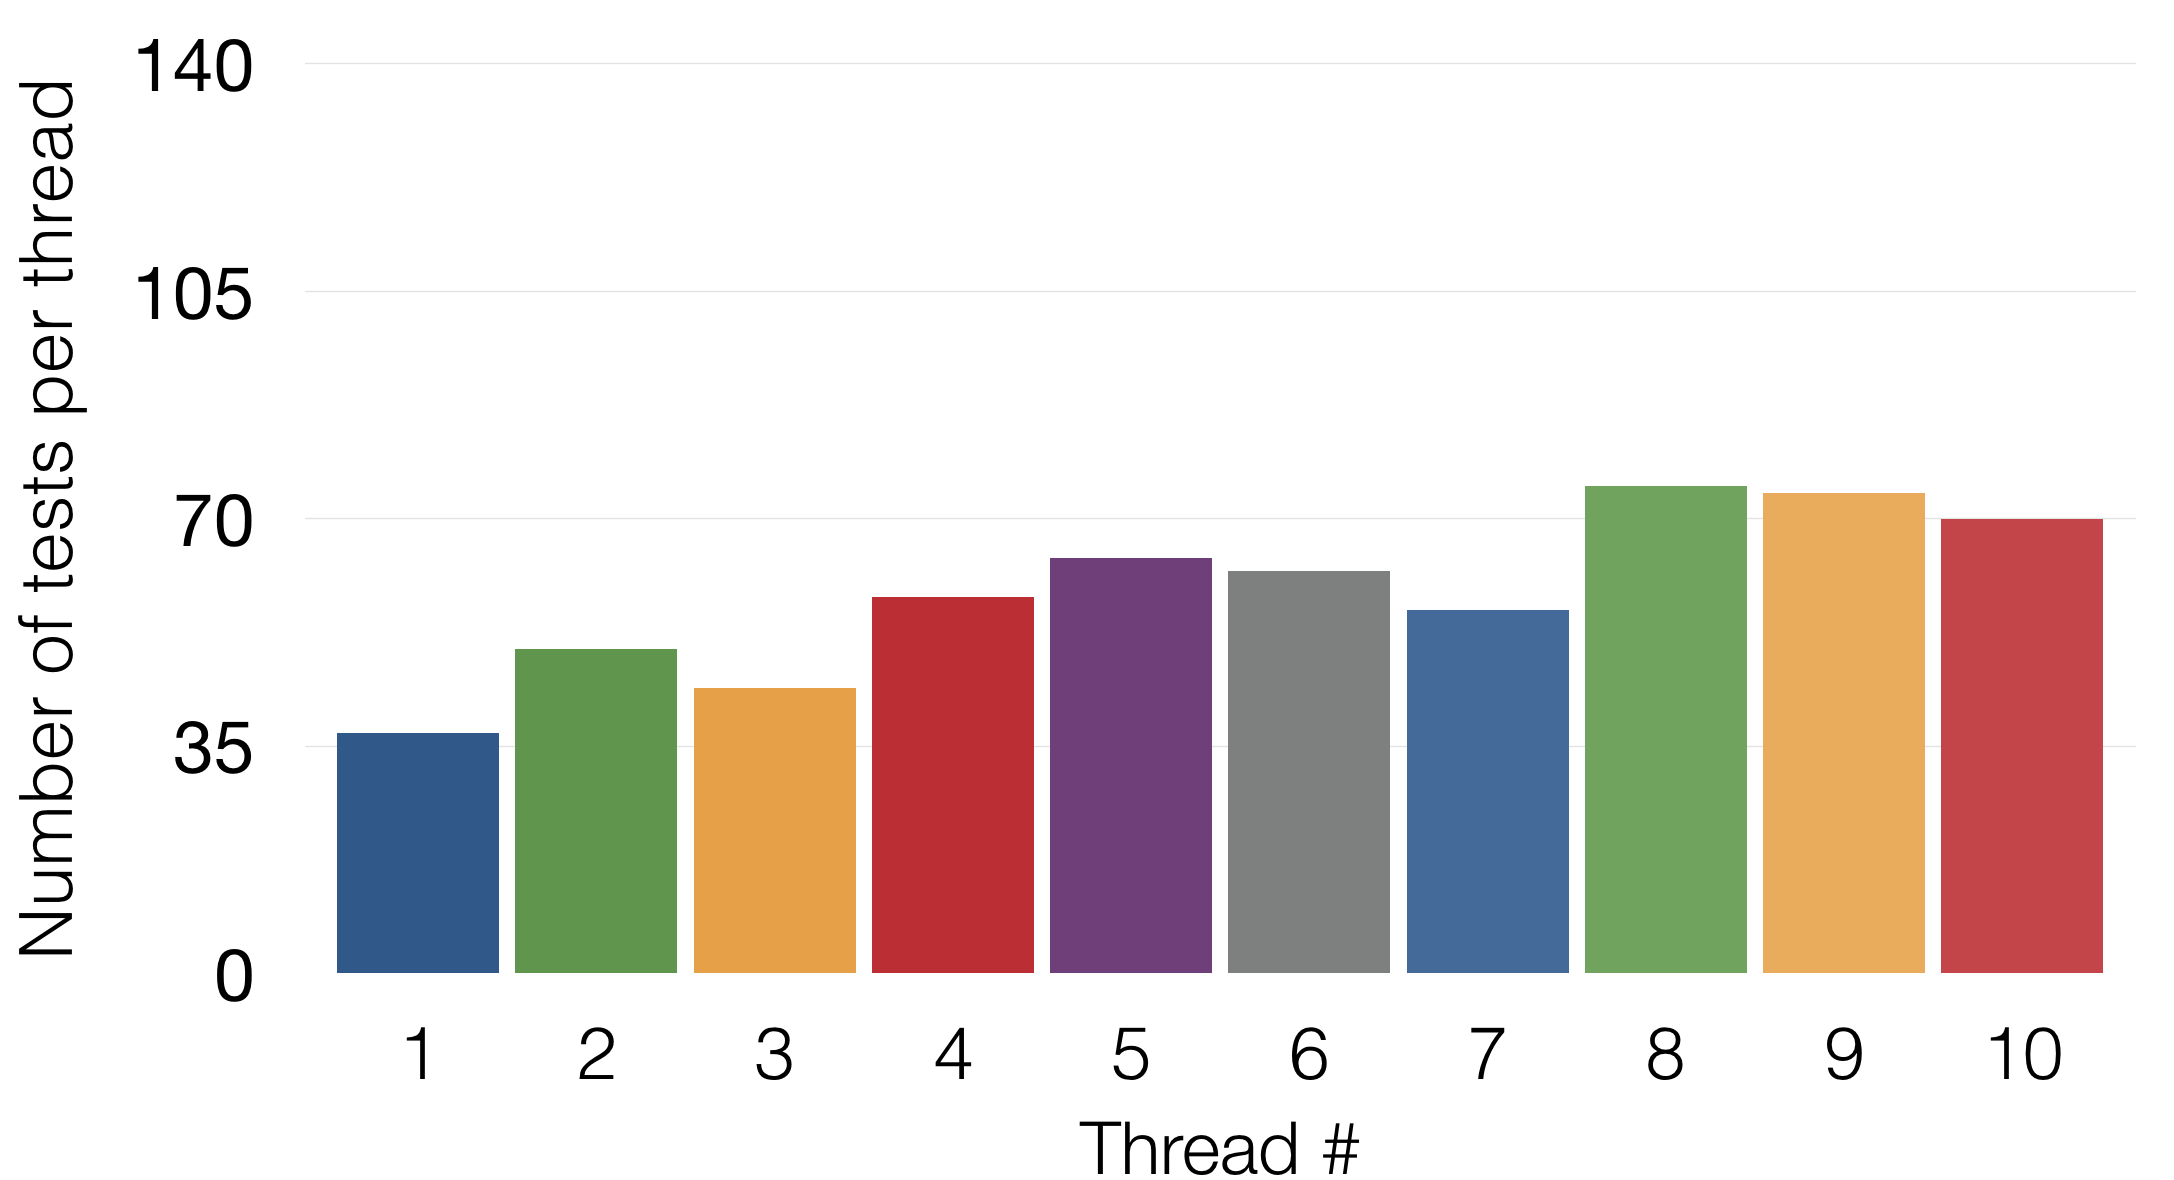 Thread sizes after optimization